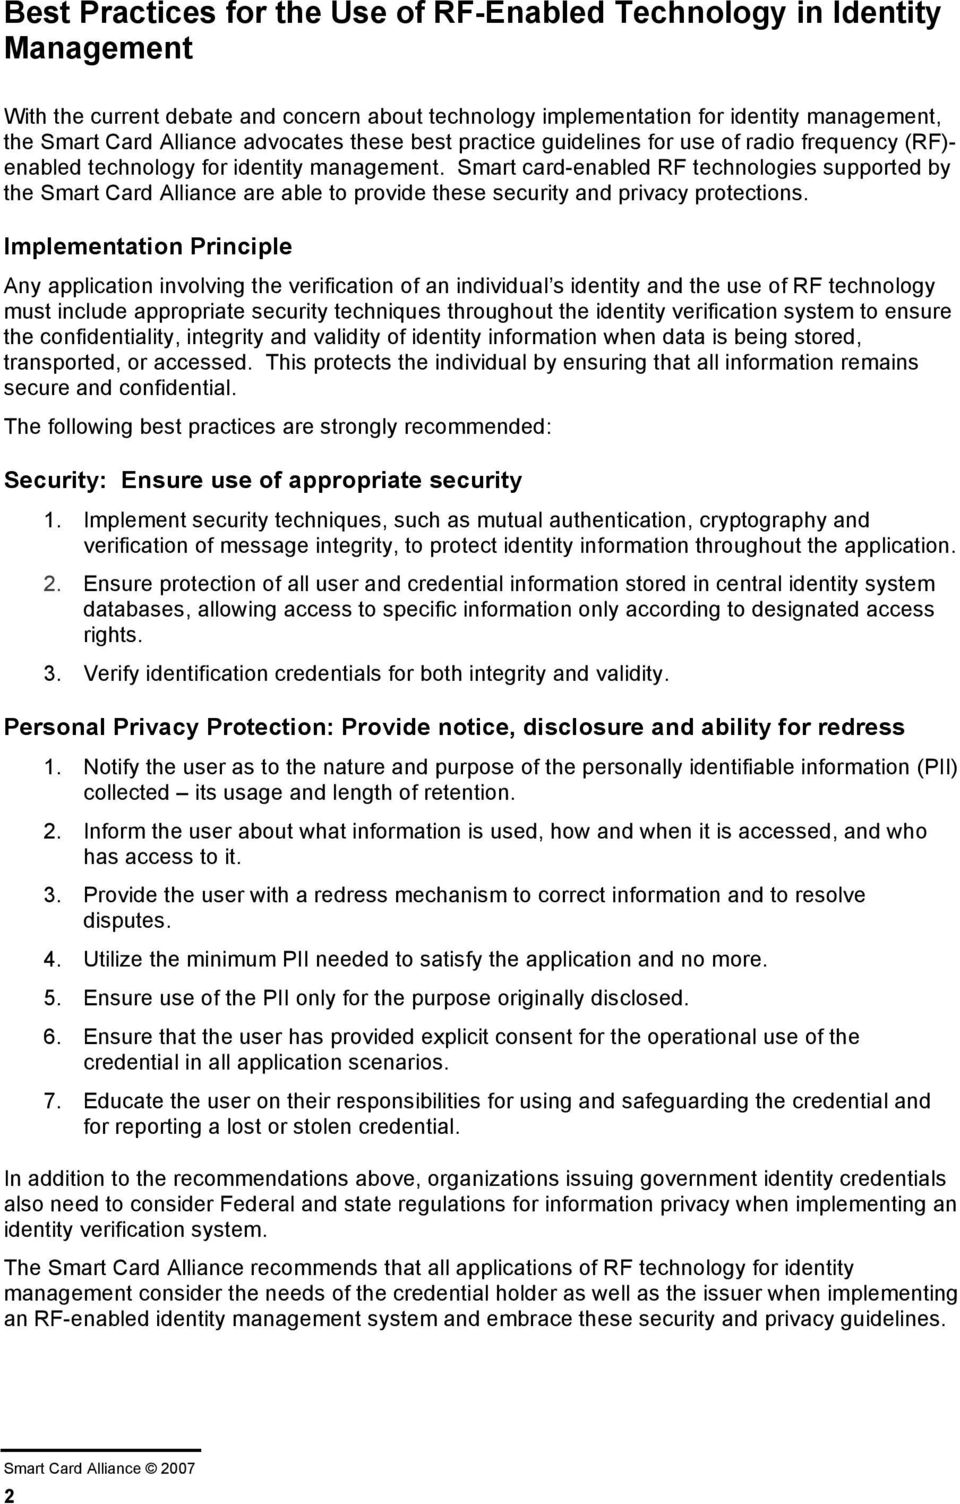 Smart card-enabled RF technologies supported by the Smart Card Alliance are able to provide these security and privacy protections.